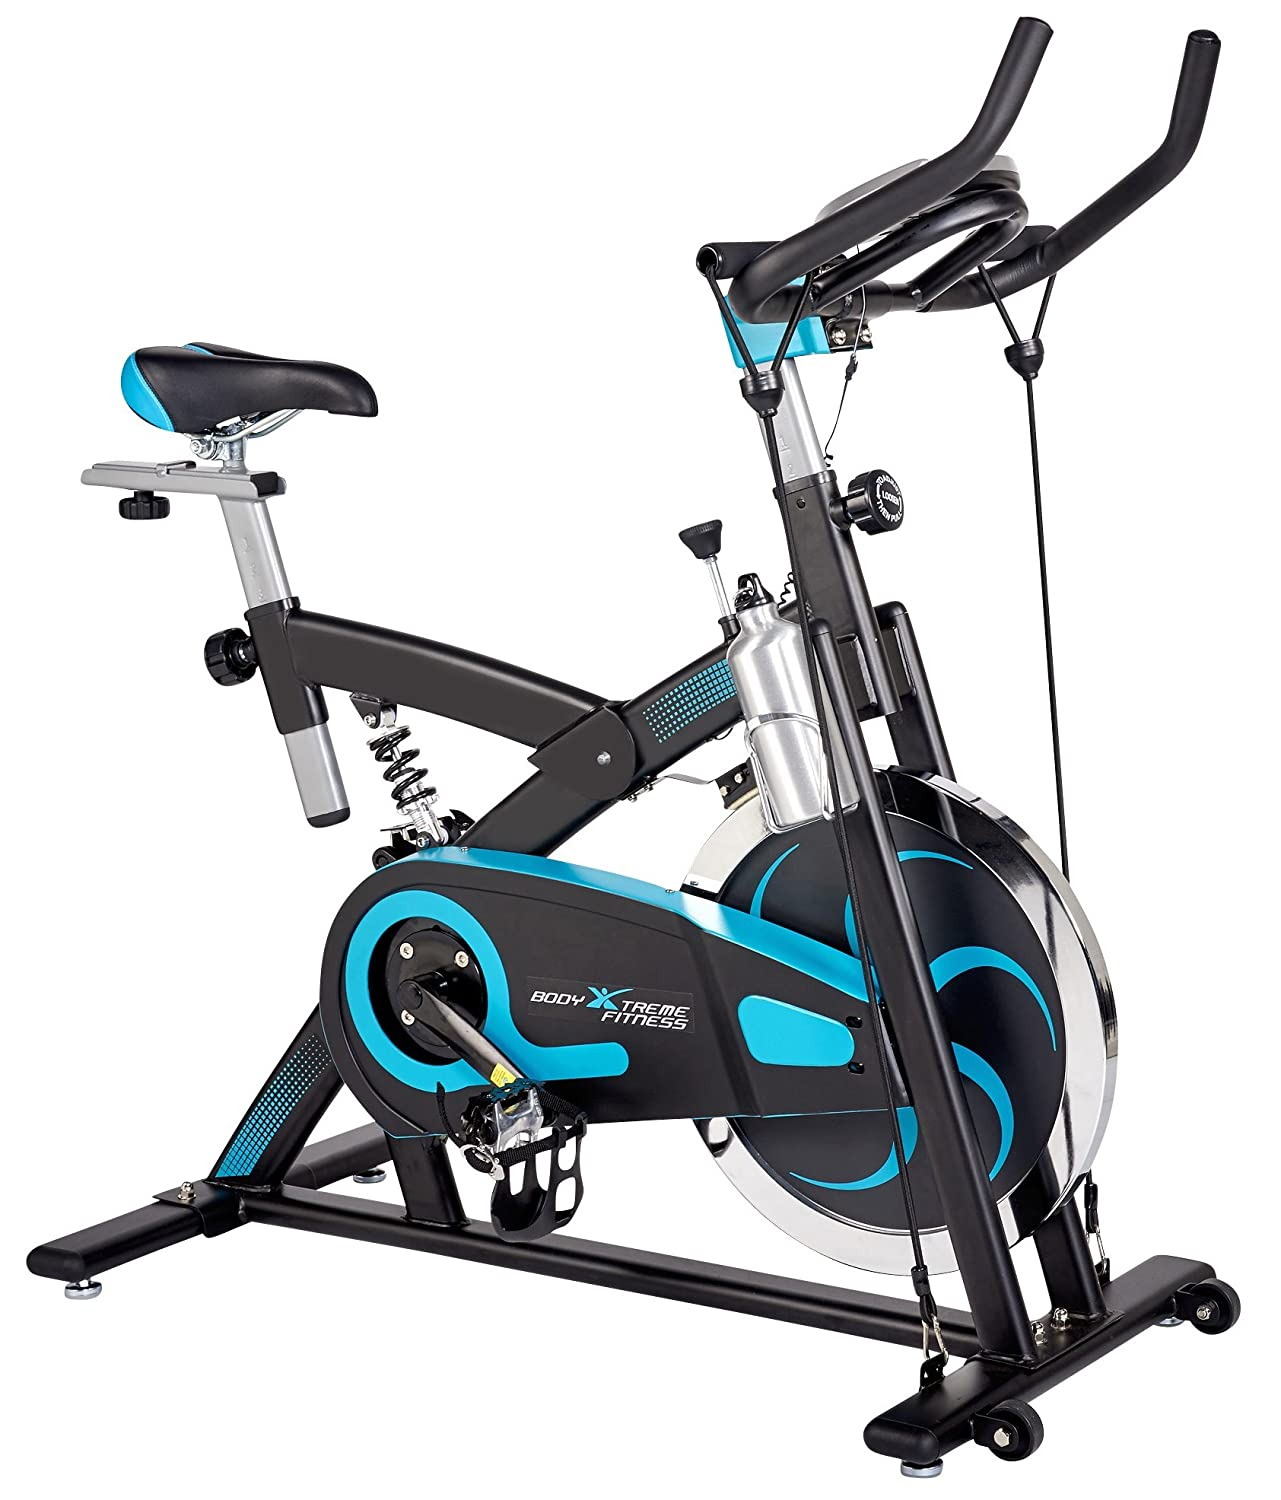 Top 10 Best Pilates Chairs For Home Exercises In 2018: Best Indoor Cycling Bikes Review September 2018